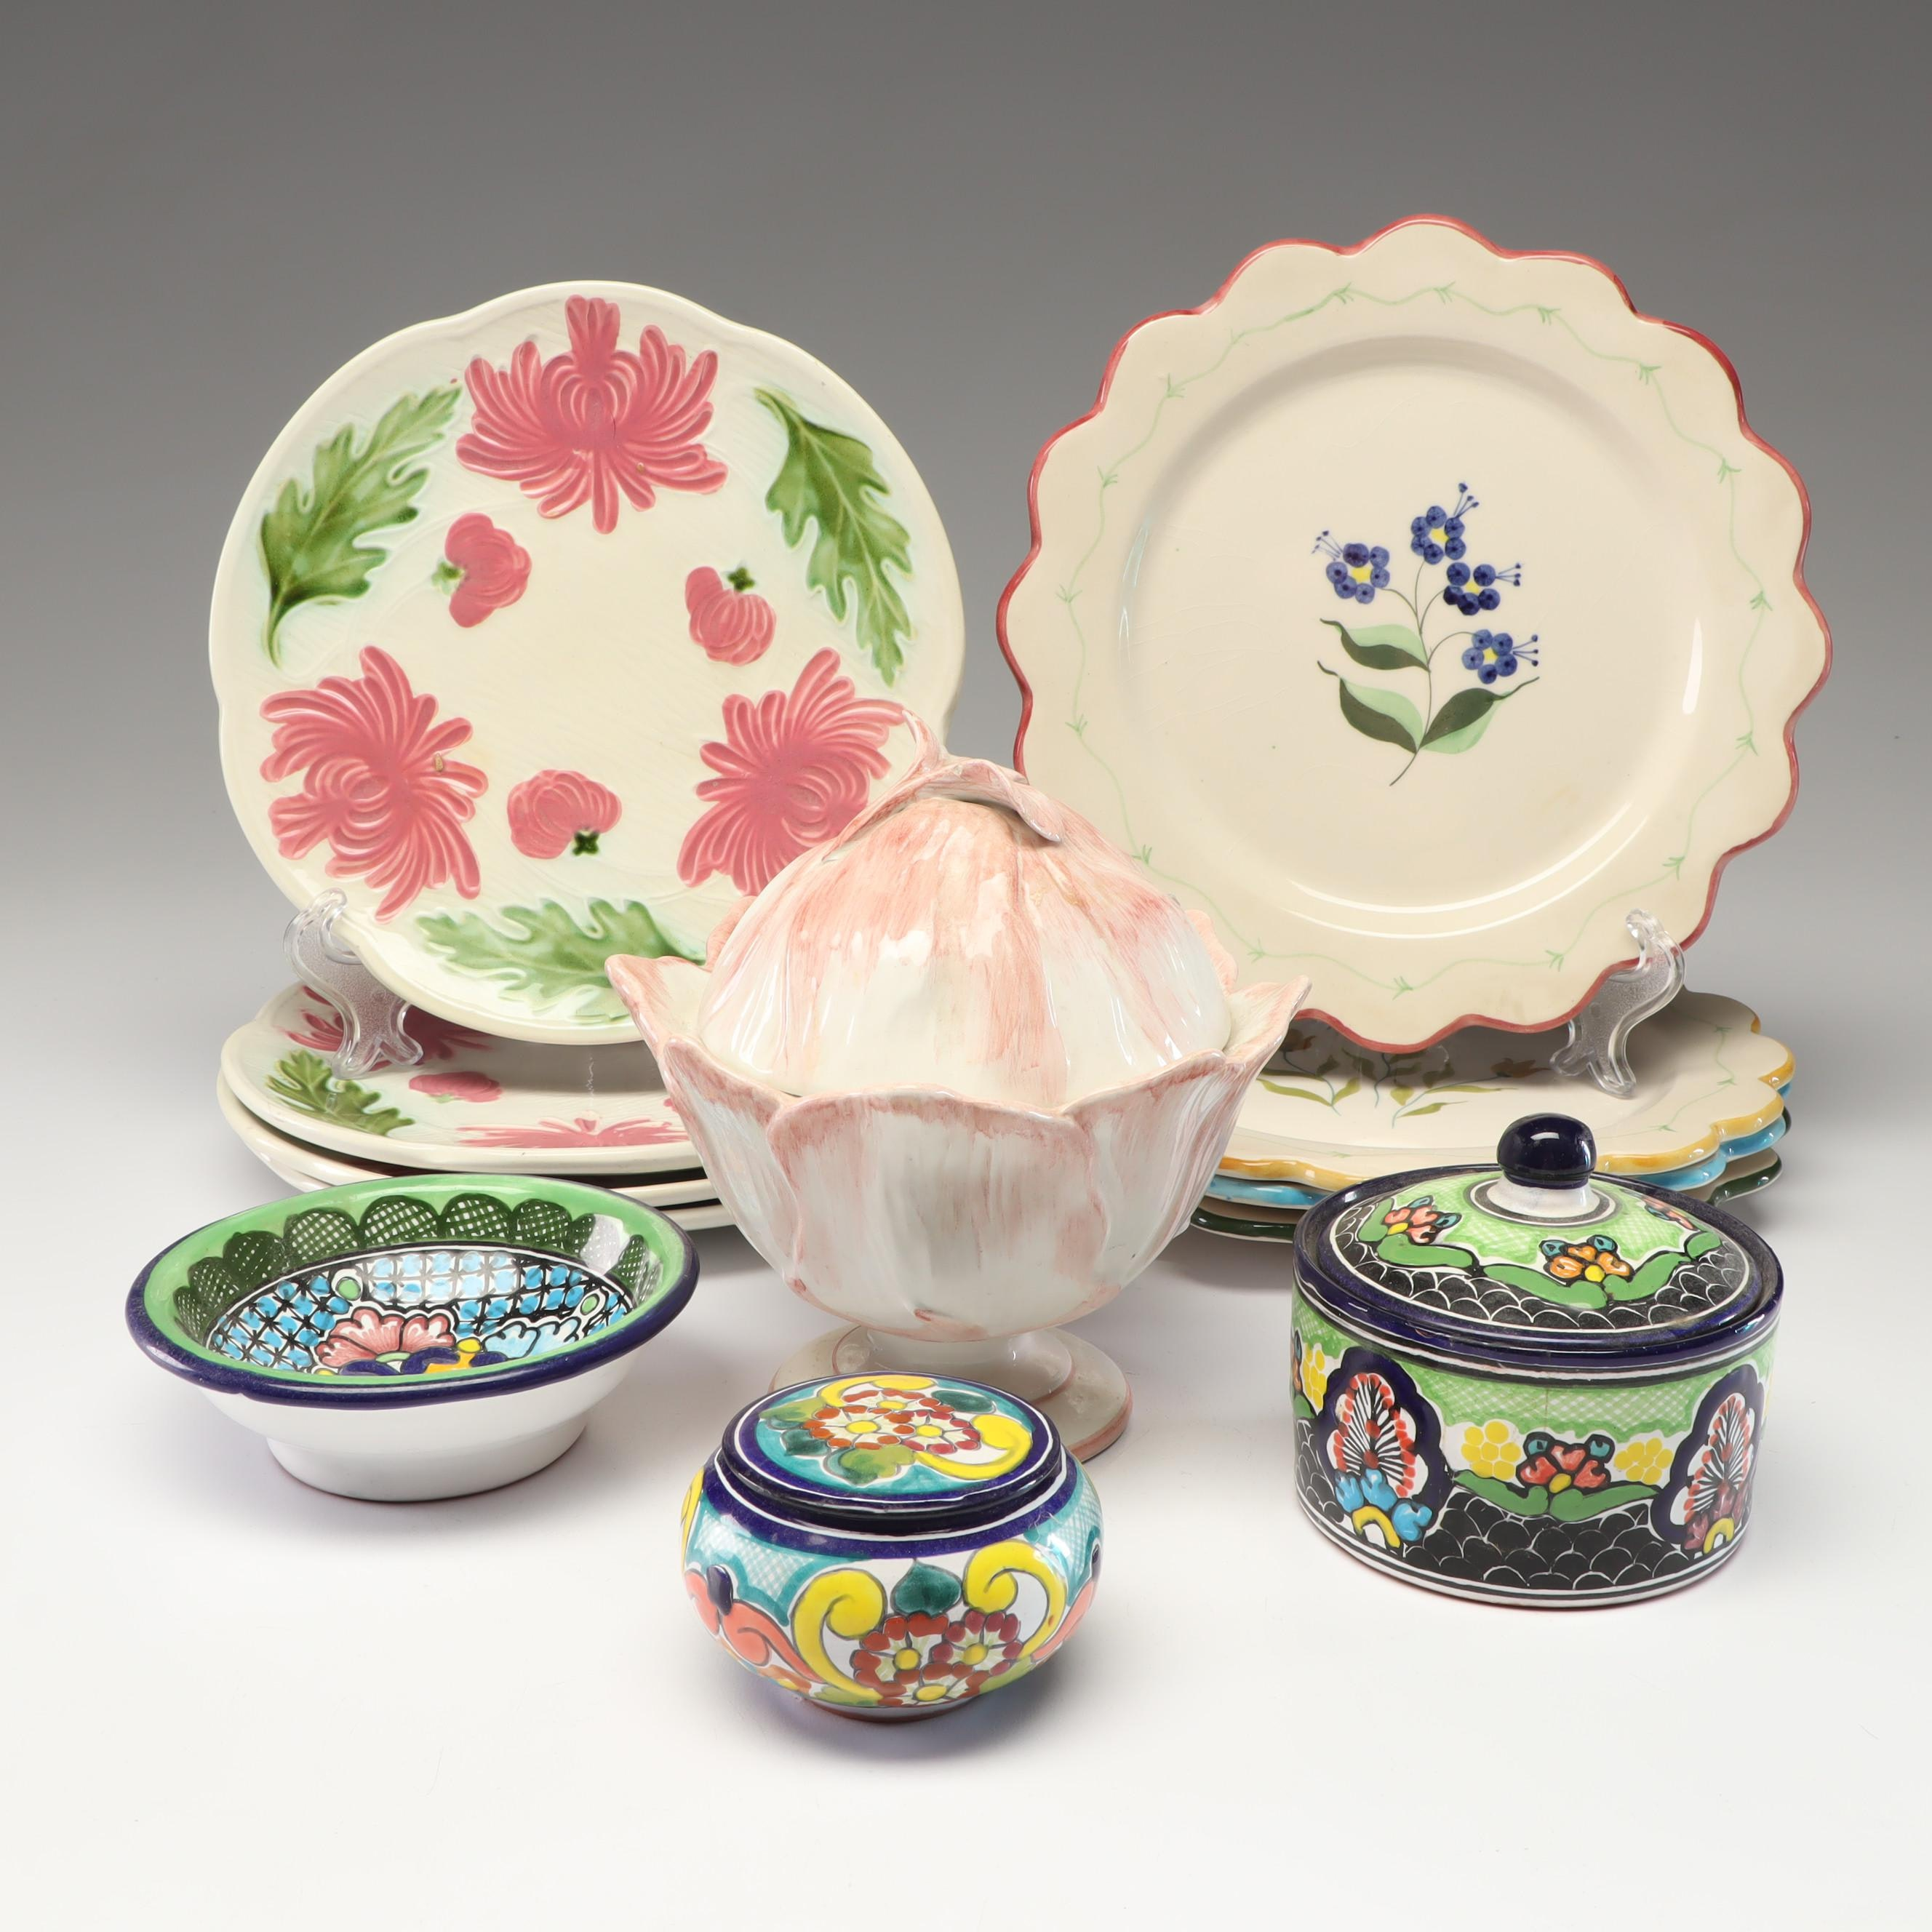 Talavera Hand-Painted Tableware with Schramberg and Others